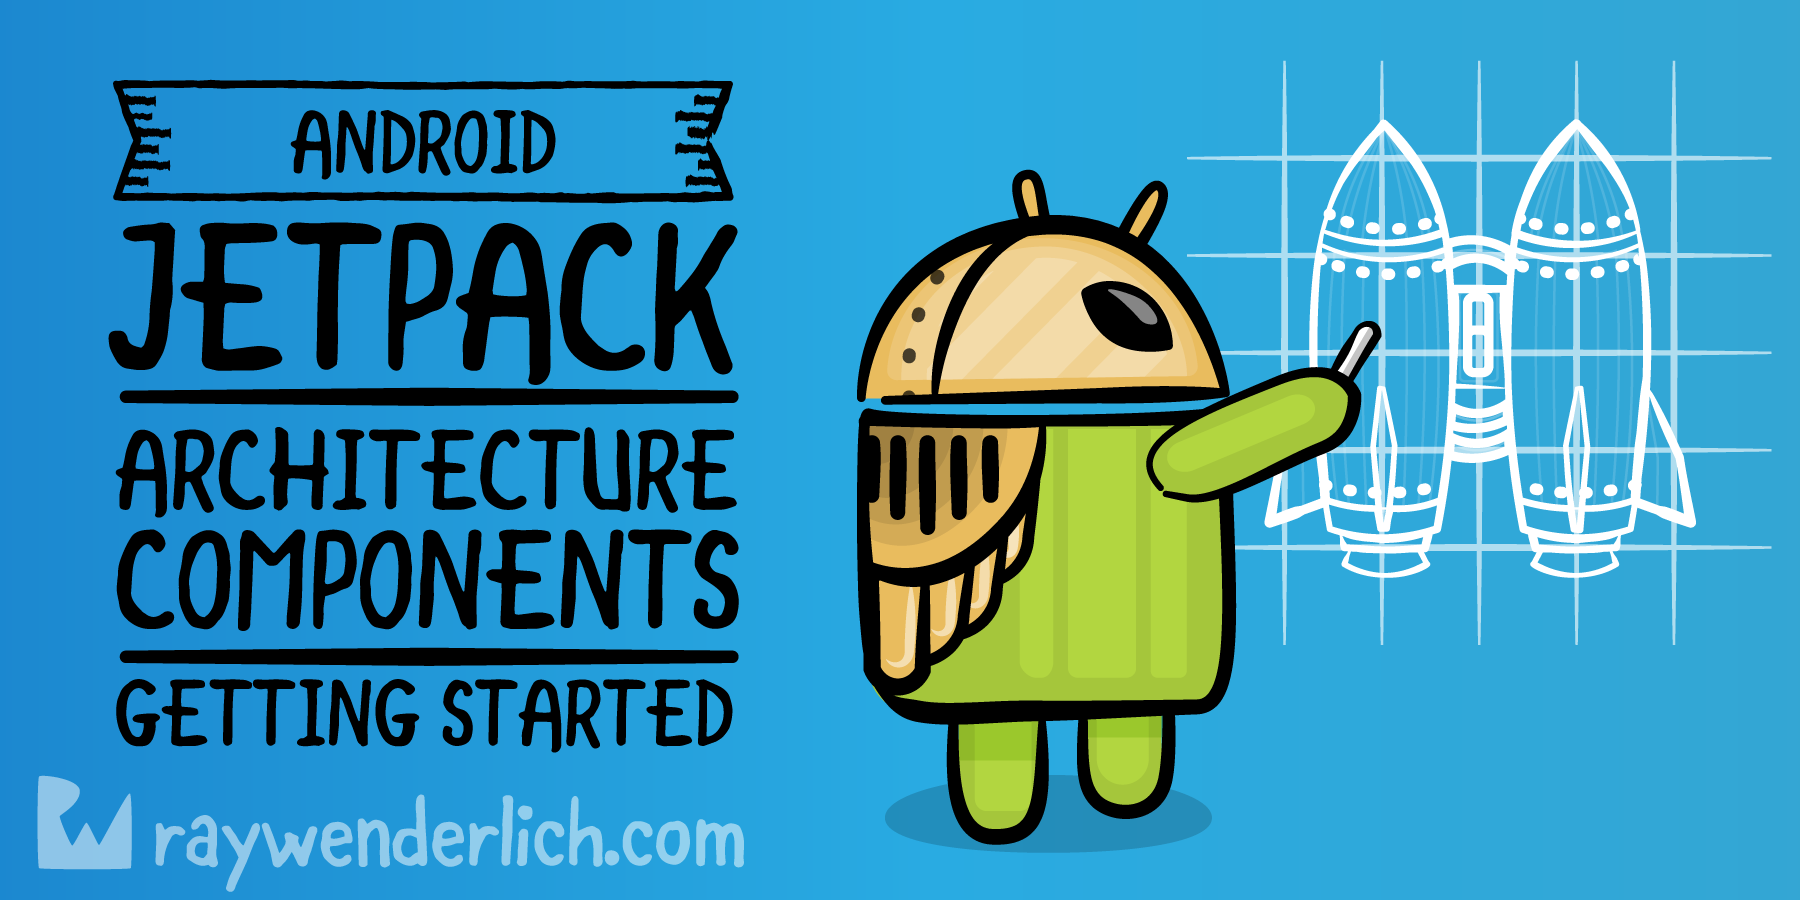 QnA VBage Android Jetpack Architecture Components: Getting Started [FREE]